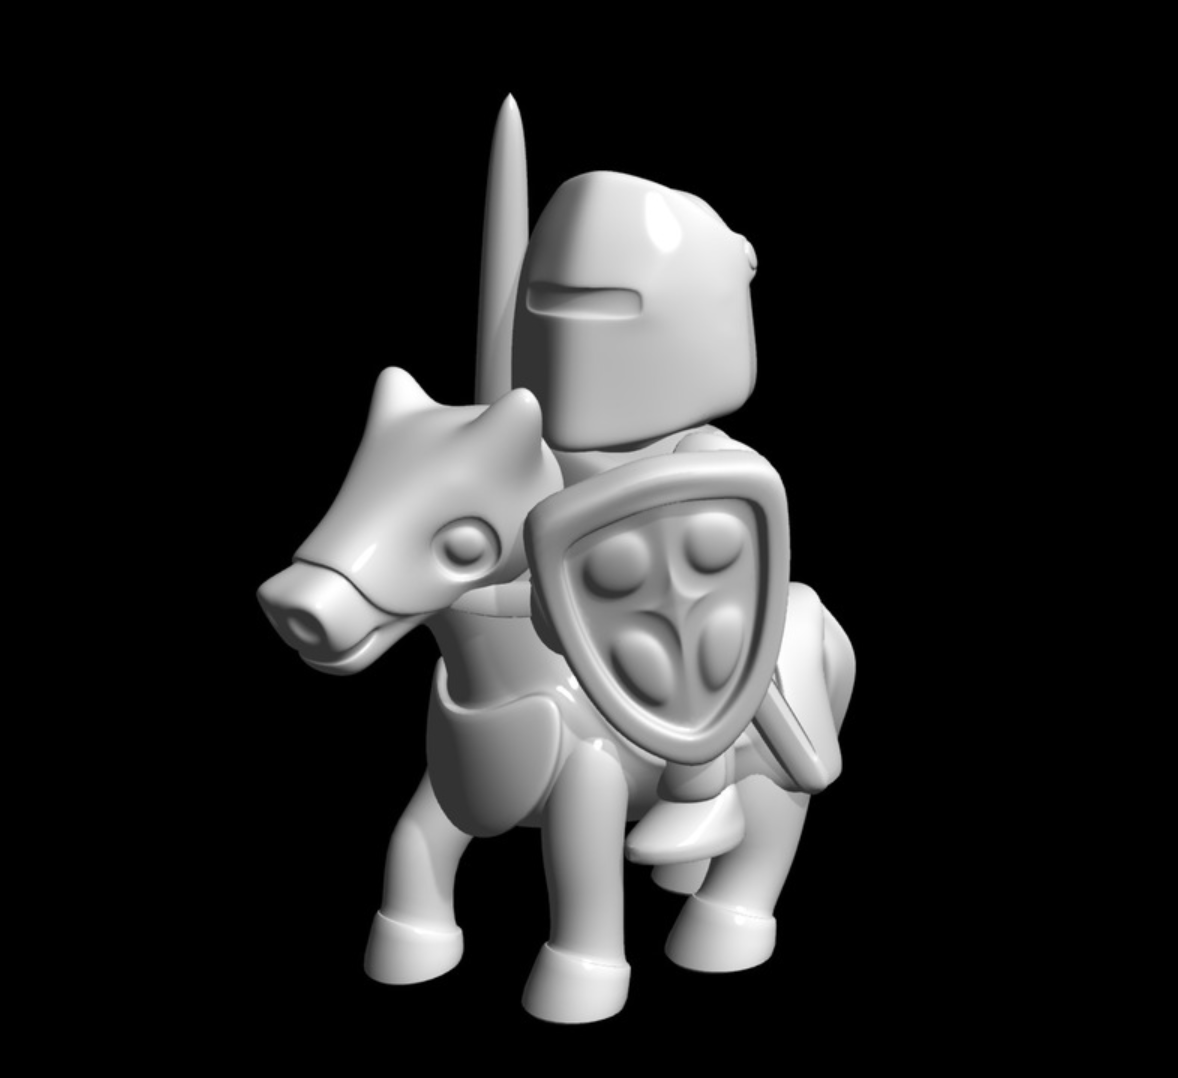 Capture d'écran 2017-10-13 à 15.12.07.png Download free STL file knight riding • Template to 3D print, bs3